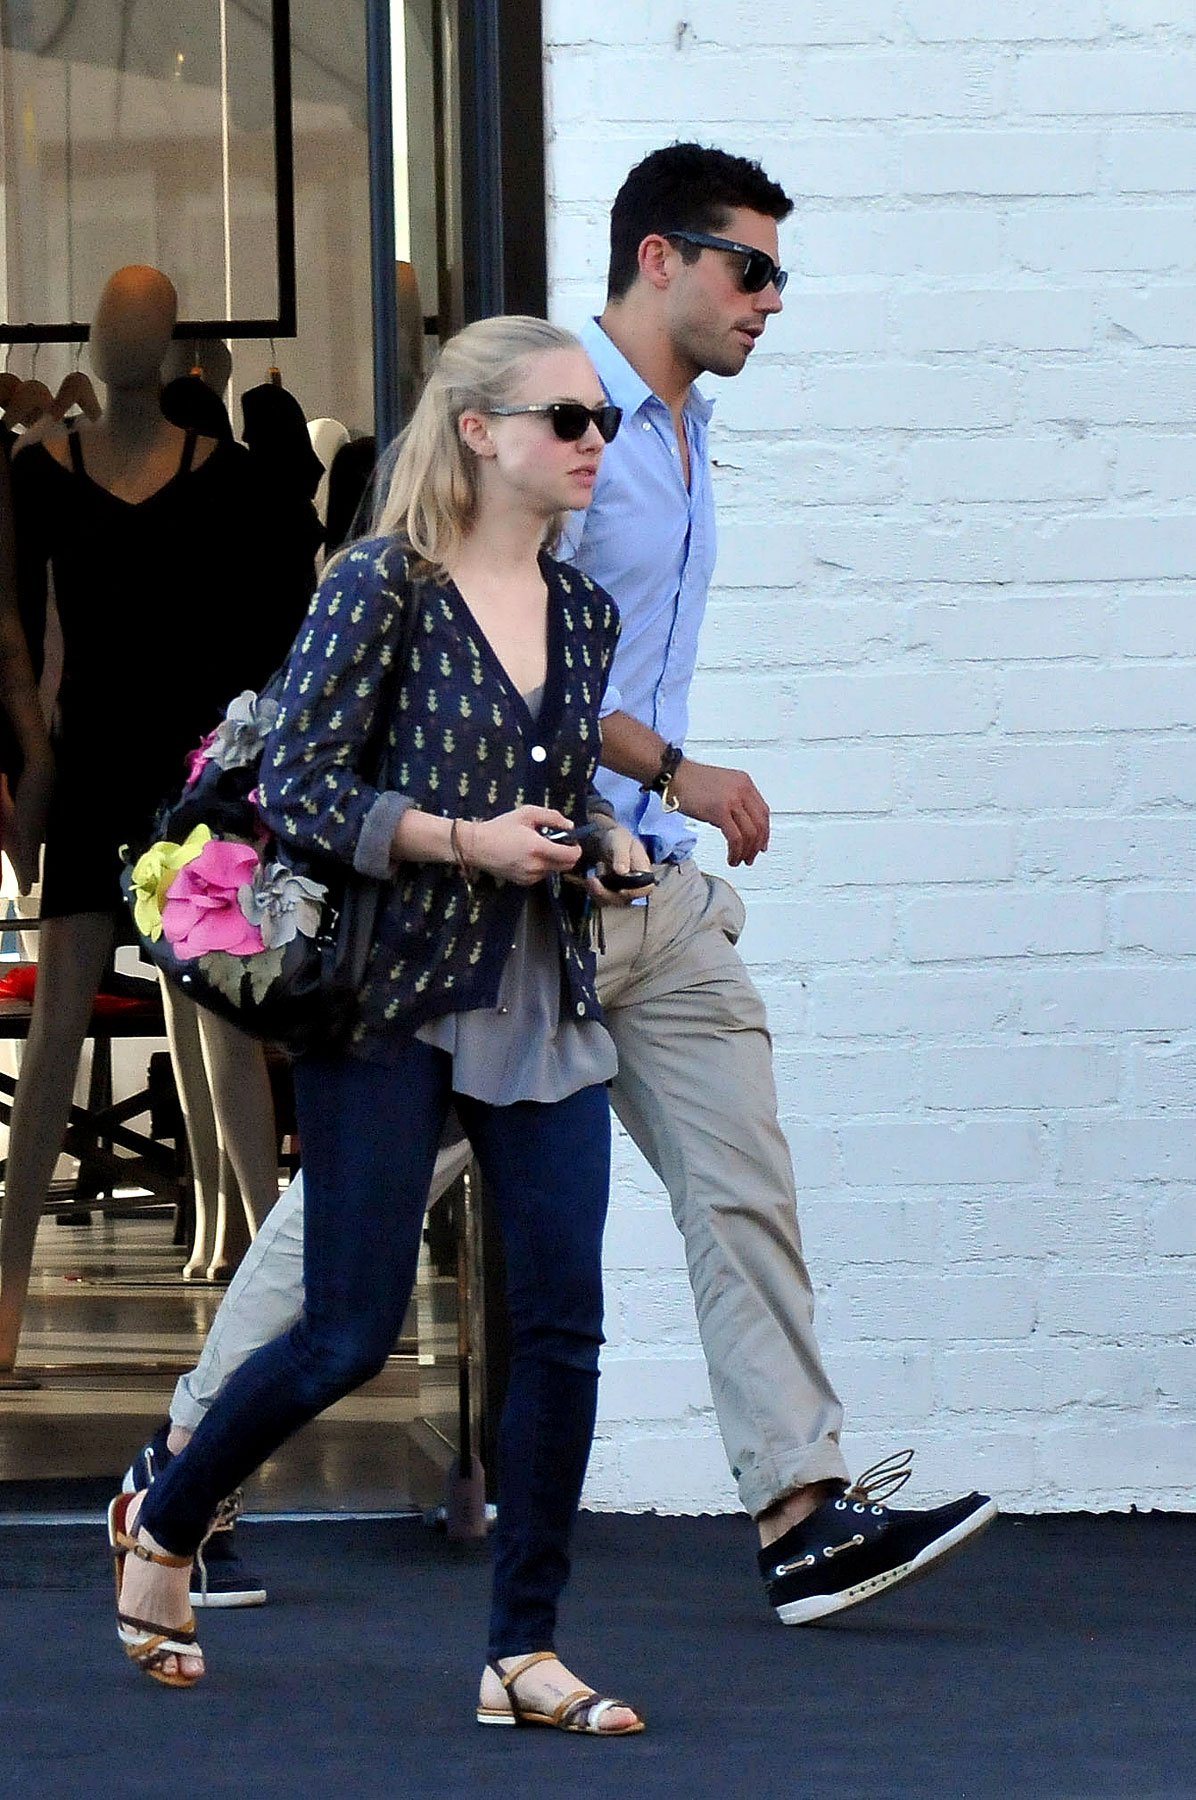 Amanda Seyfried and Dominic Cooper Squelch Breakup Rumors By Hanging Out Together (PHOTOS)